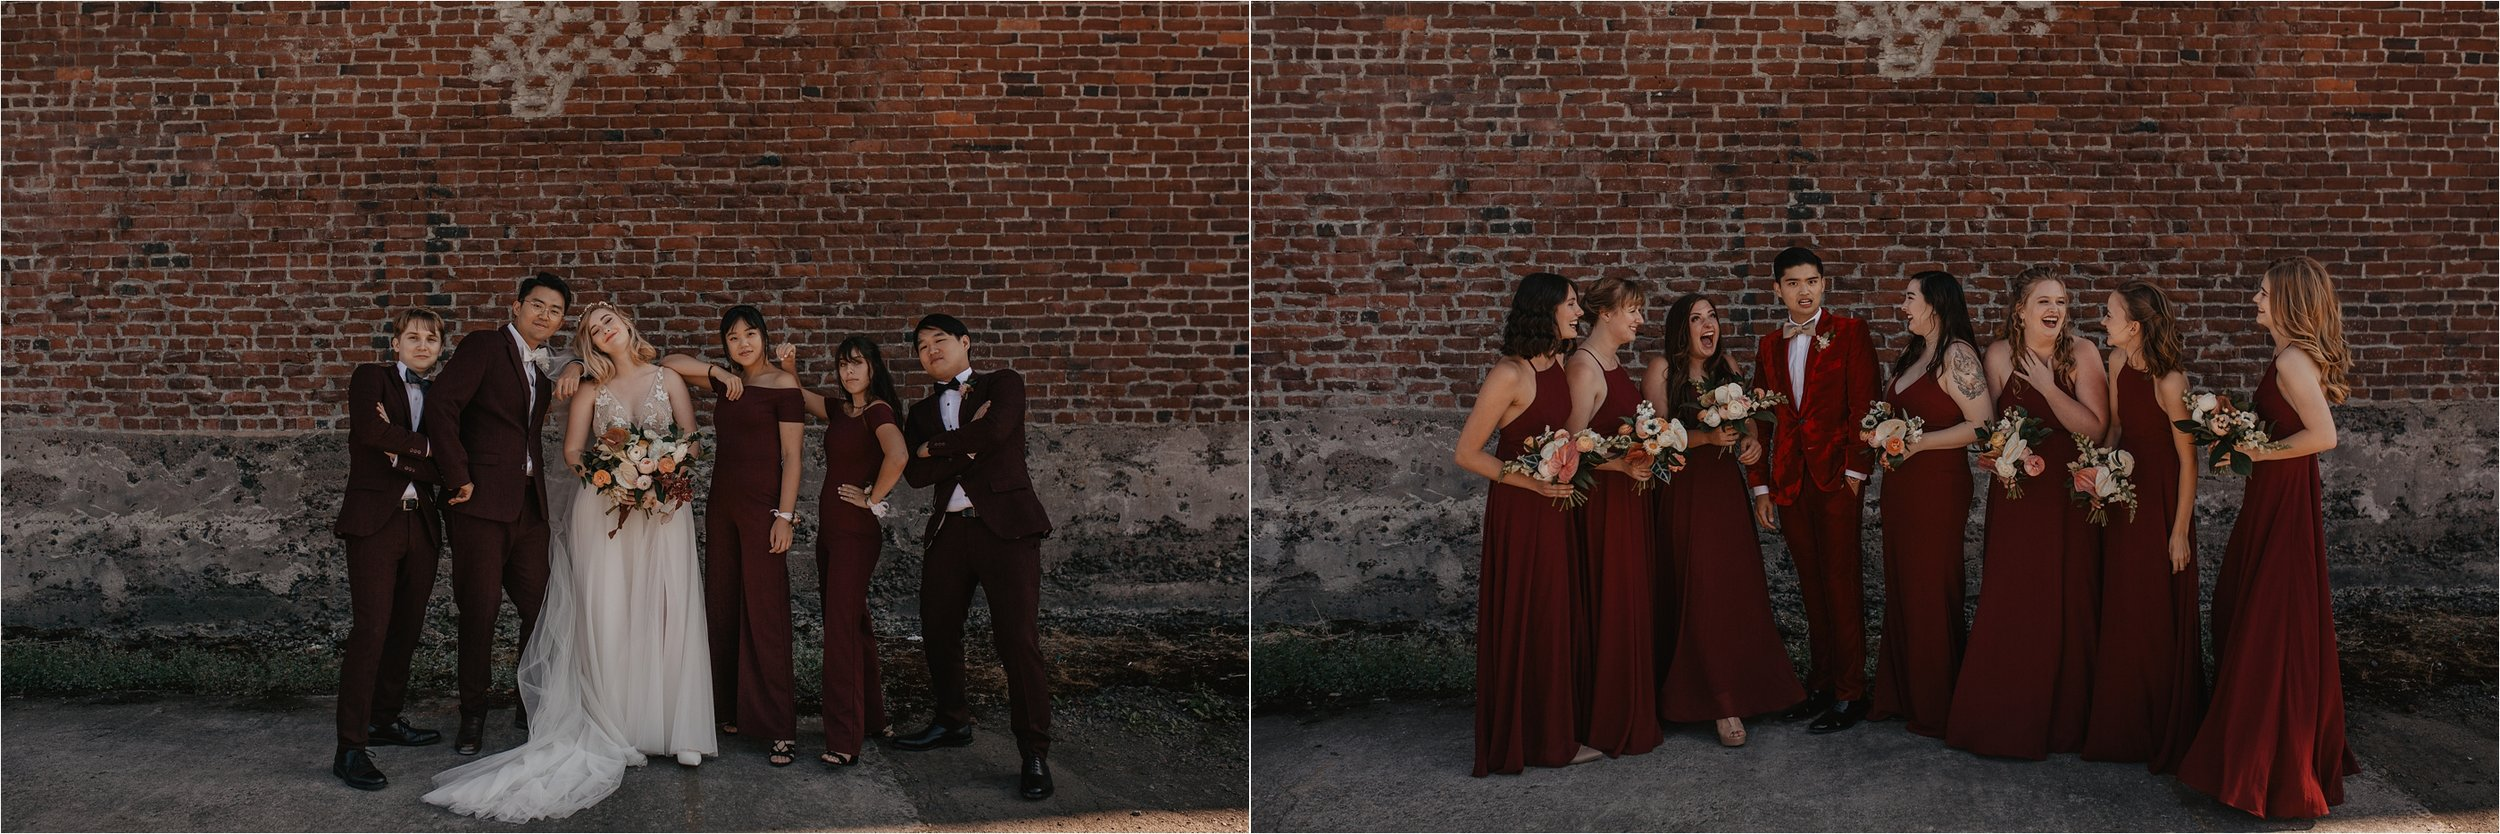 modernized-vintage-wedding-portland-city_0067.jpg